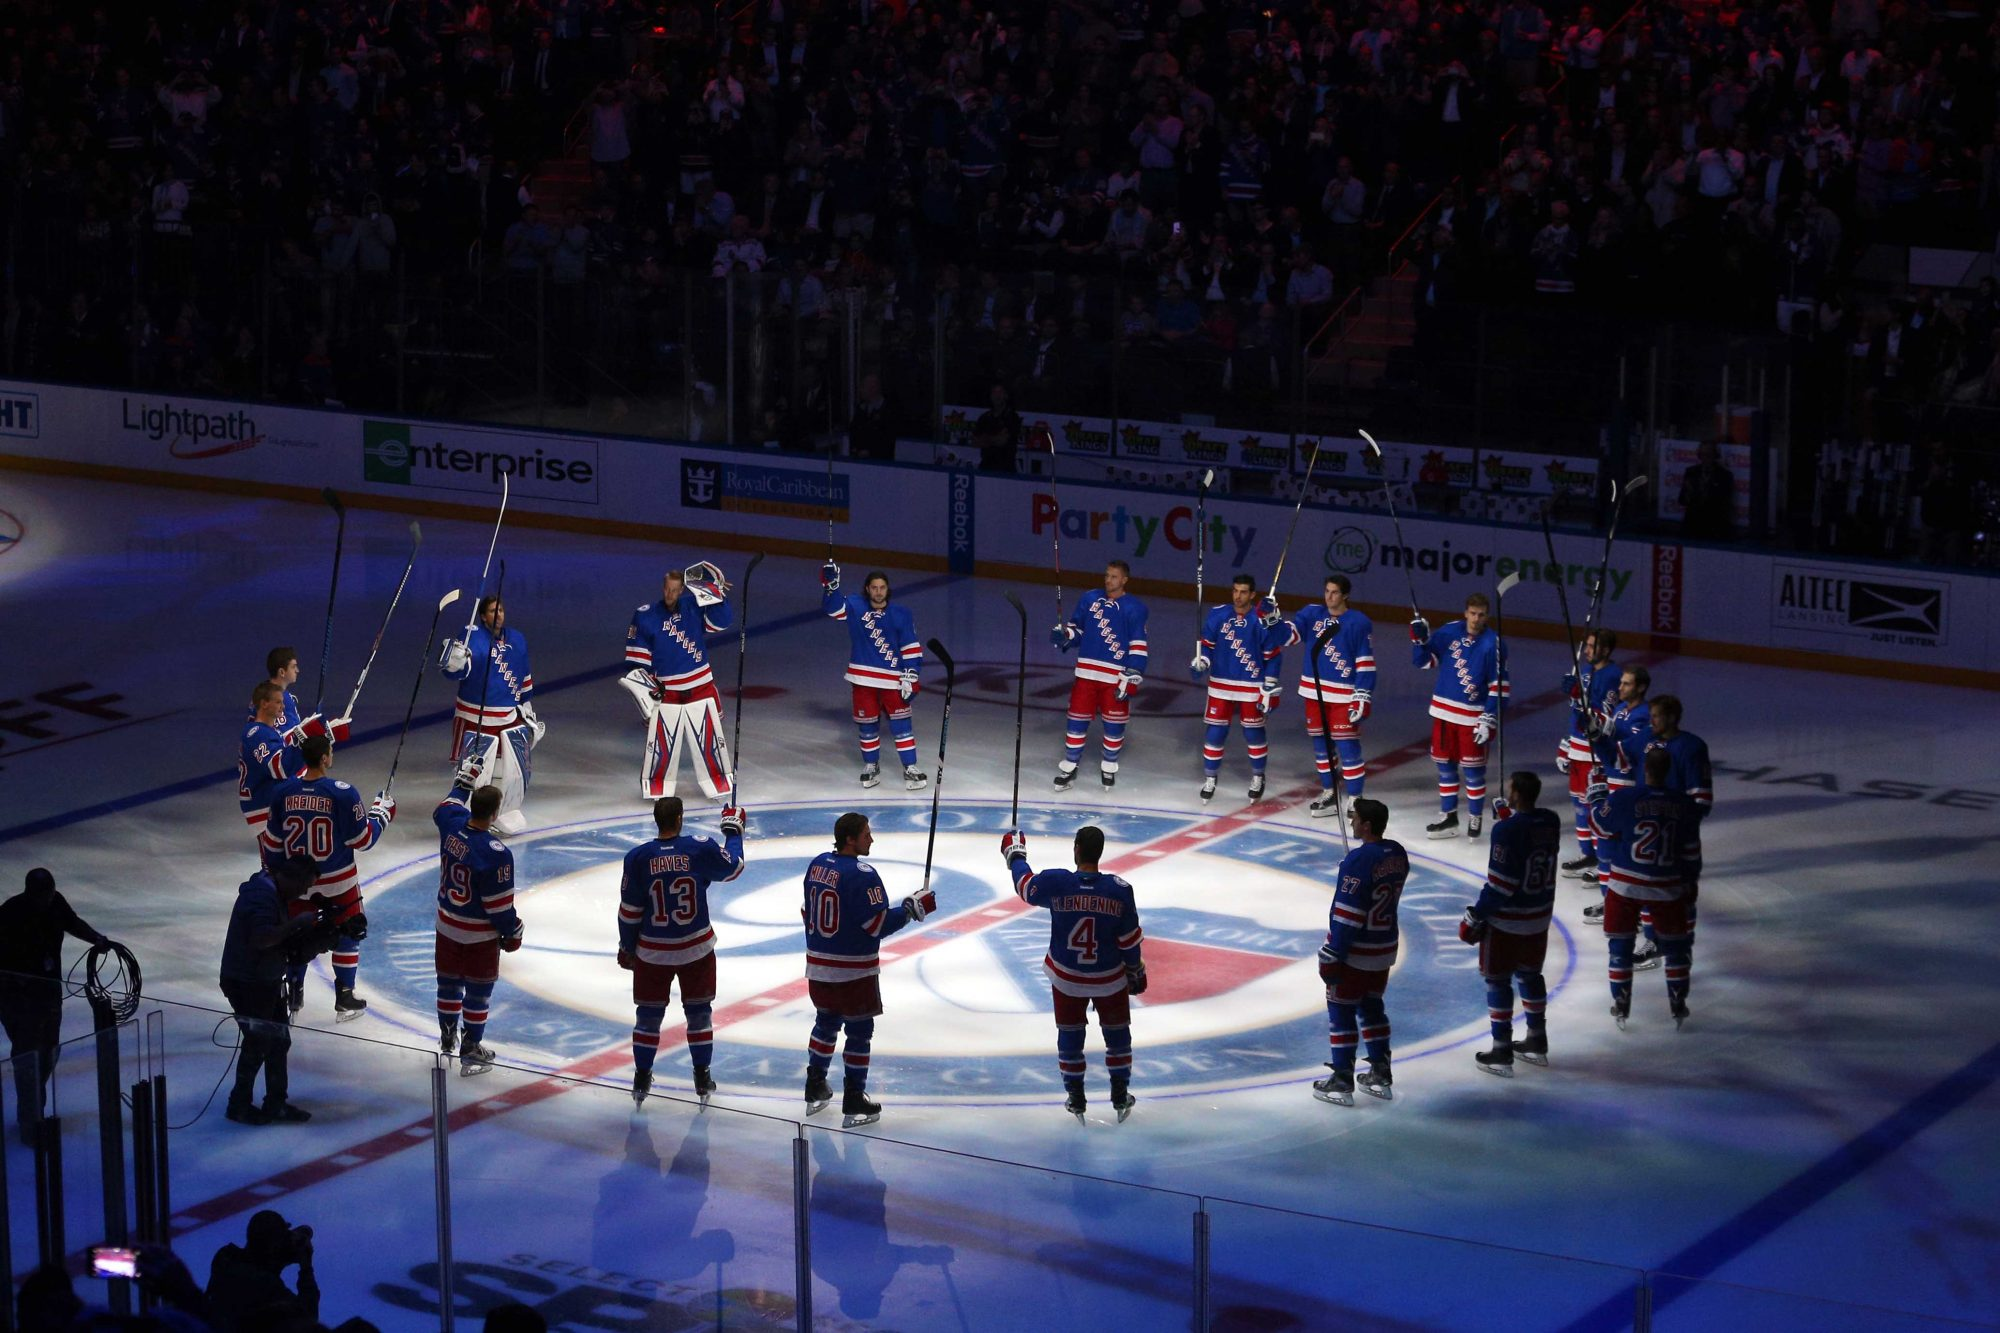 New York Rangers: A State of the Union Address